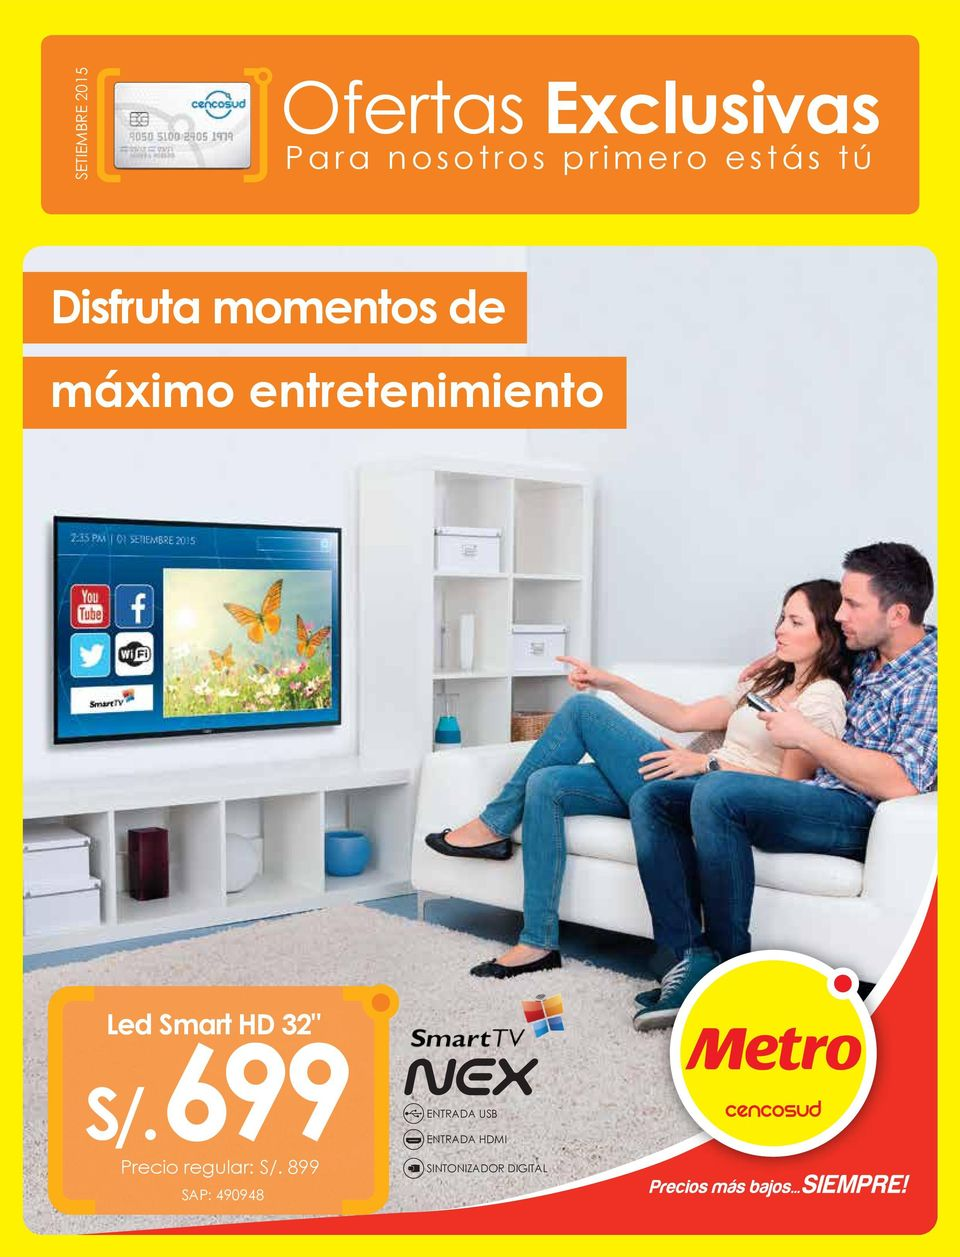 "entretenimiento Led Smart HD 32"" S/."